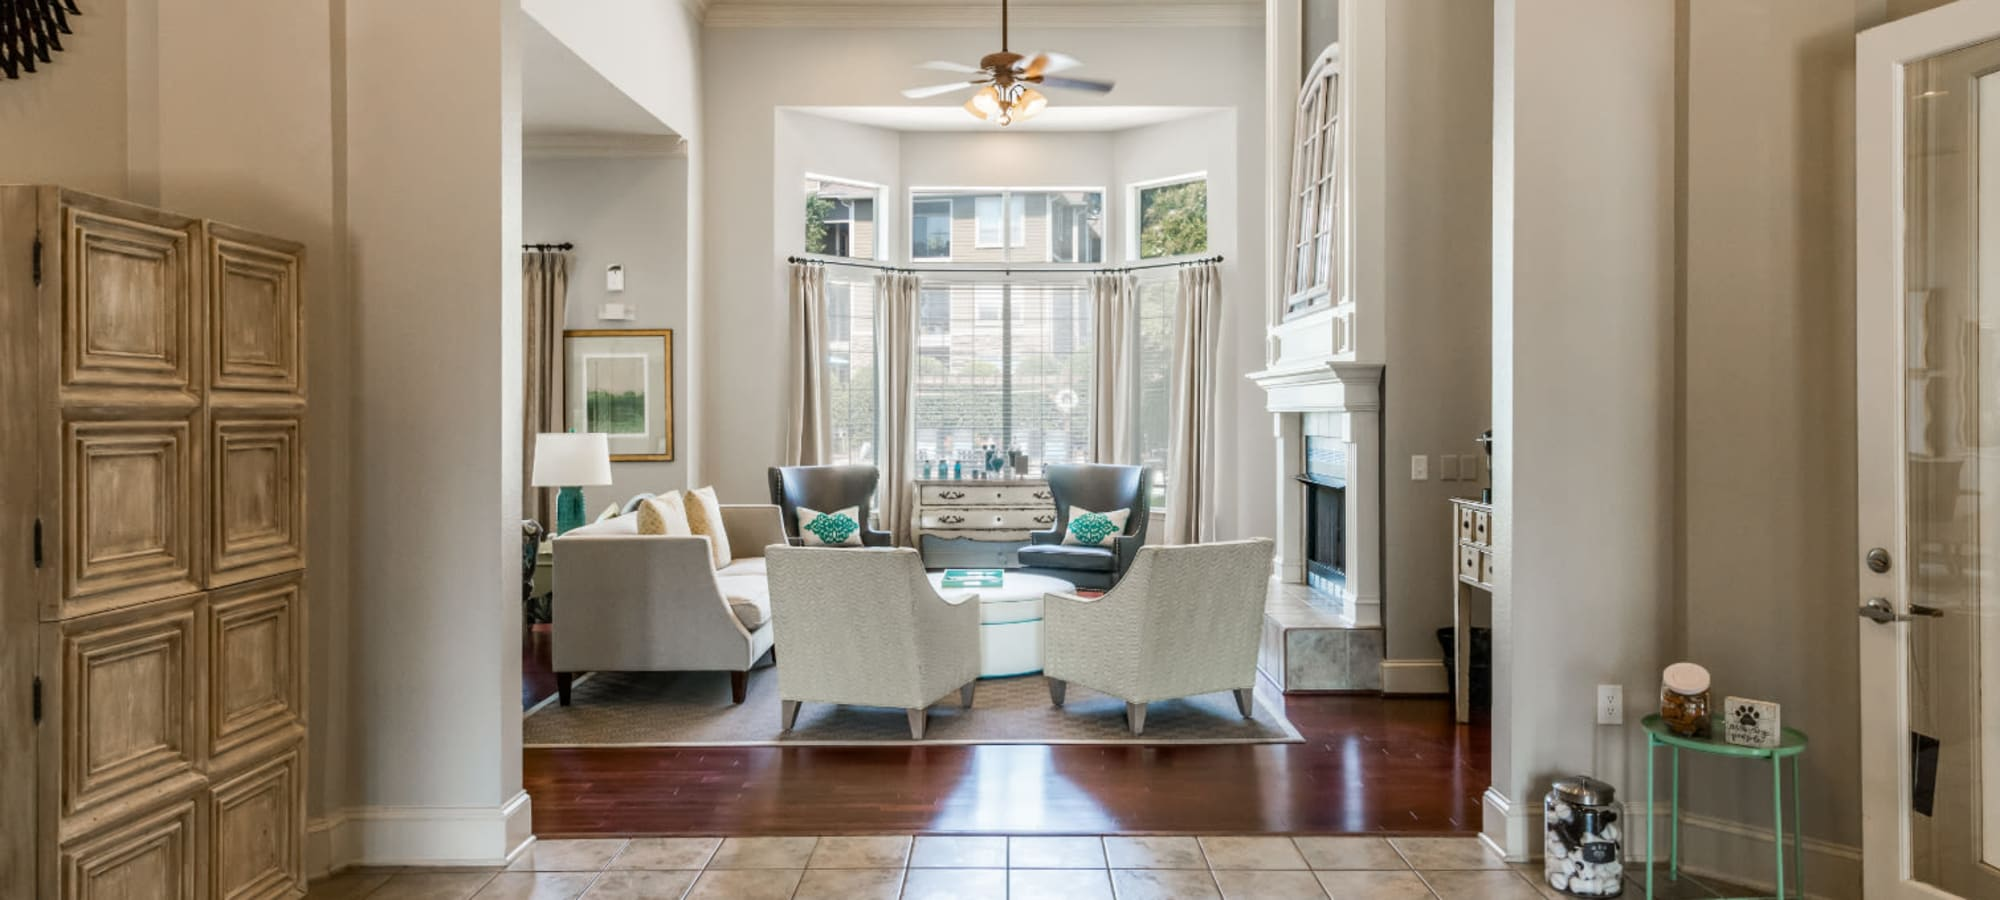 Virtual tours of Marquis at Carmel Commons in Charlotte, North Carolina